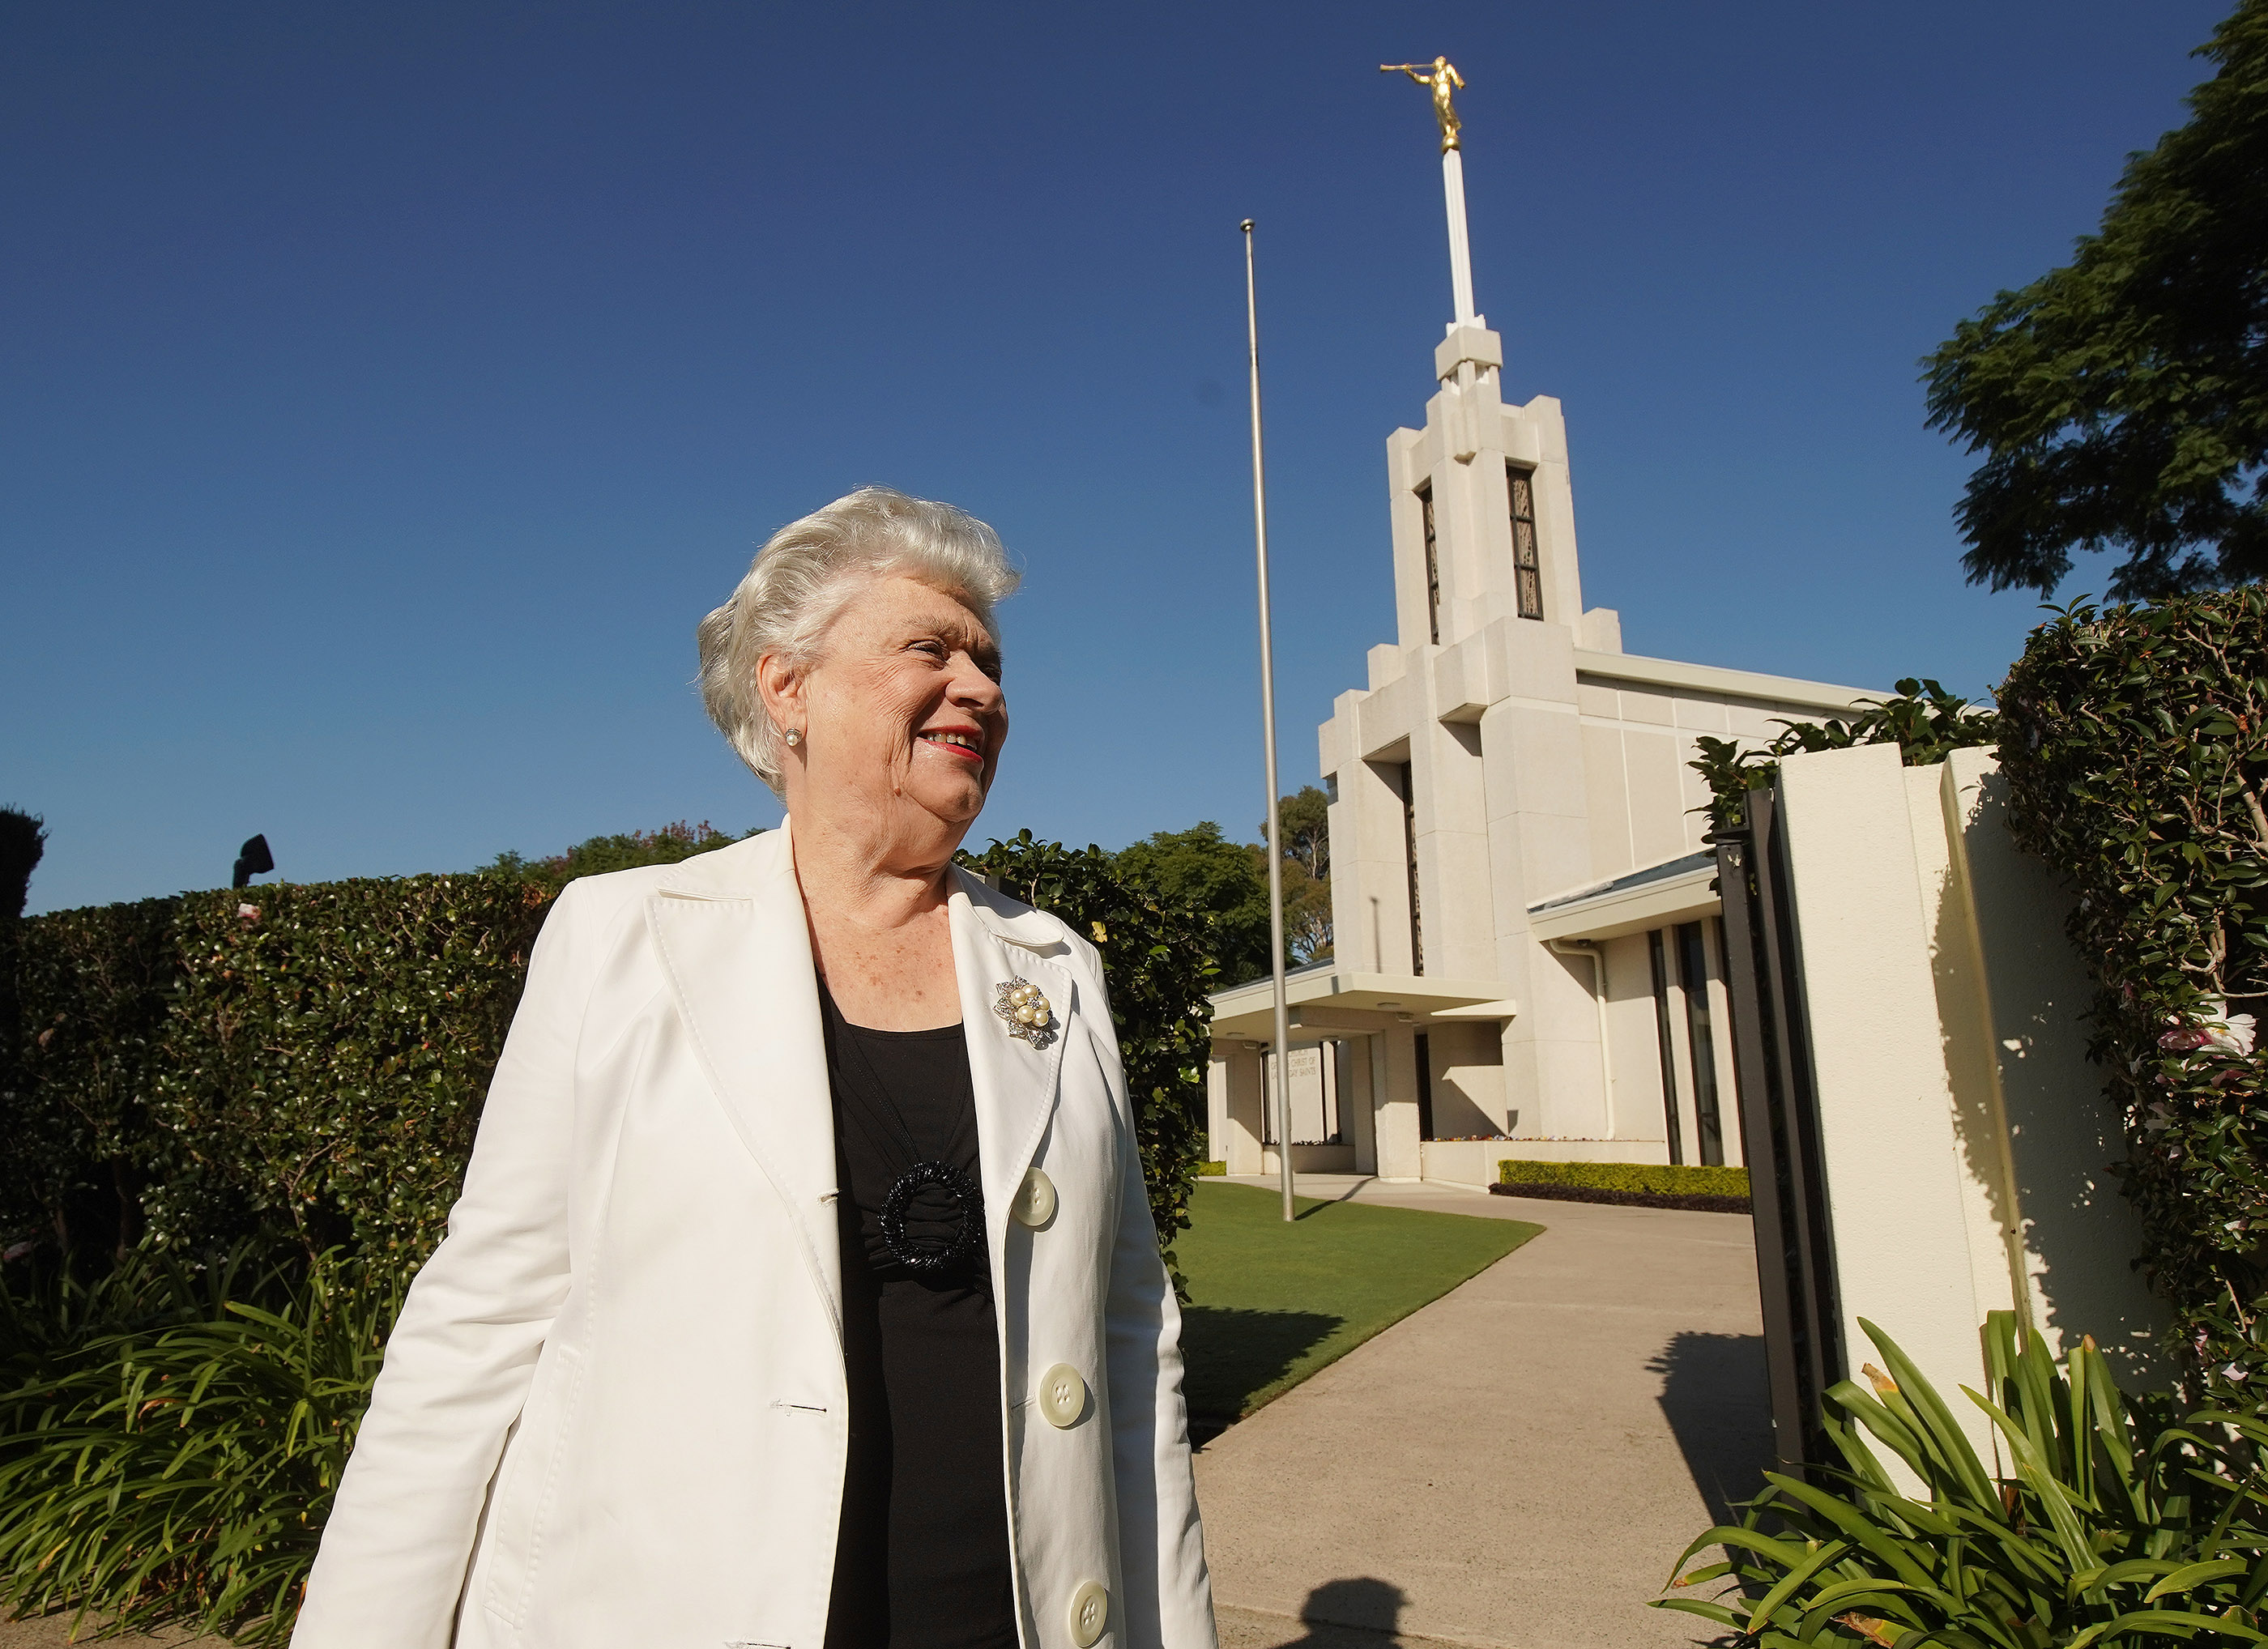 Elva Merle Mitchell looks over the grounds at the Sydney Australia Temple on May 18, 2019, in Sydney, Australia.